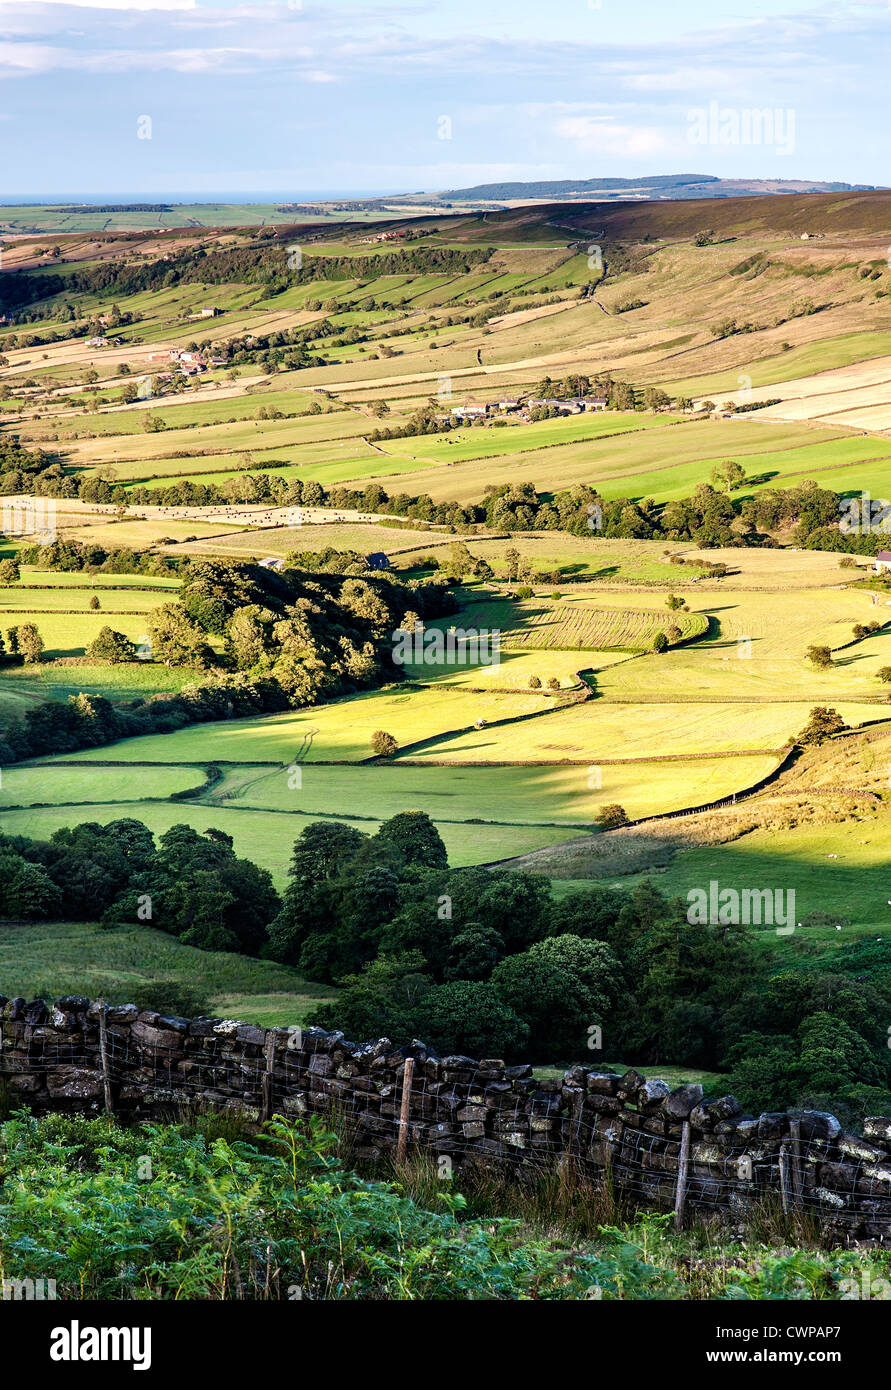 A view overlooking Danby Dale from Danby Rigg on the North Yorkshire Moors - Stock Image